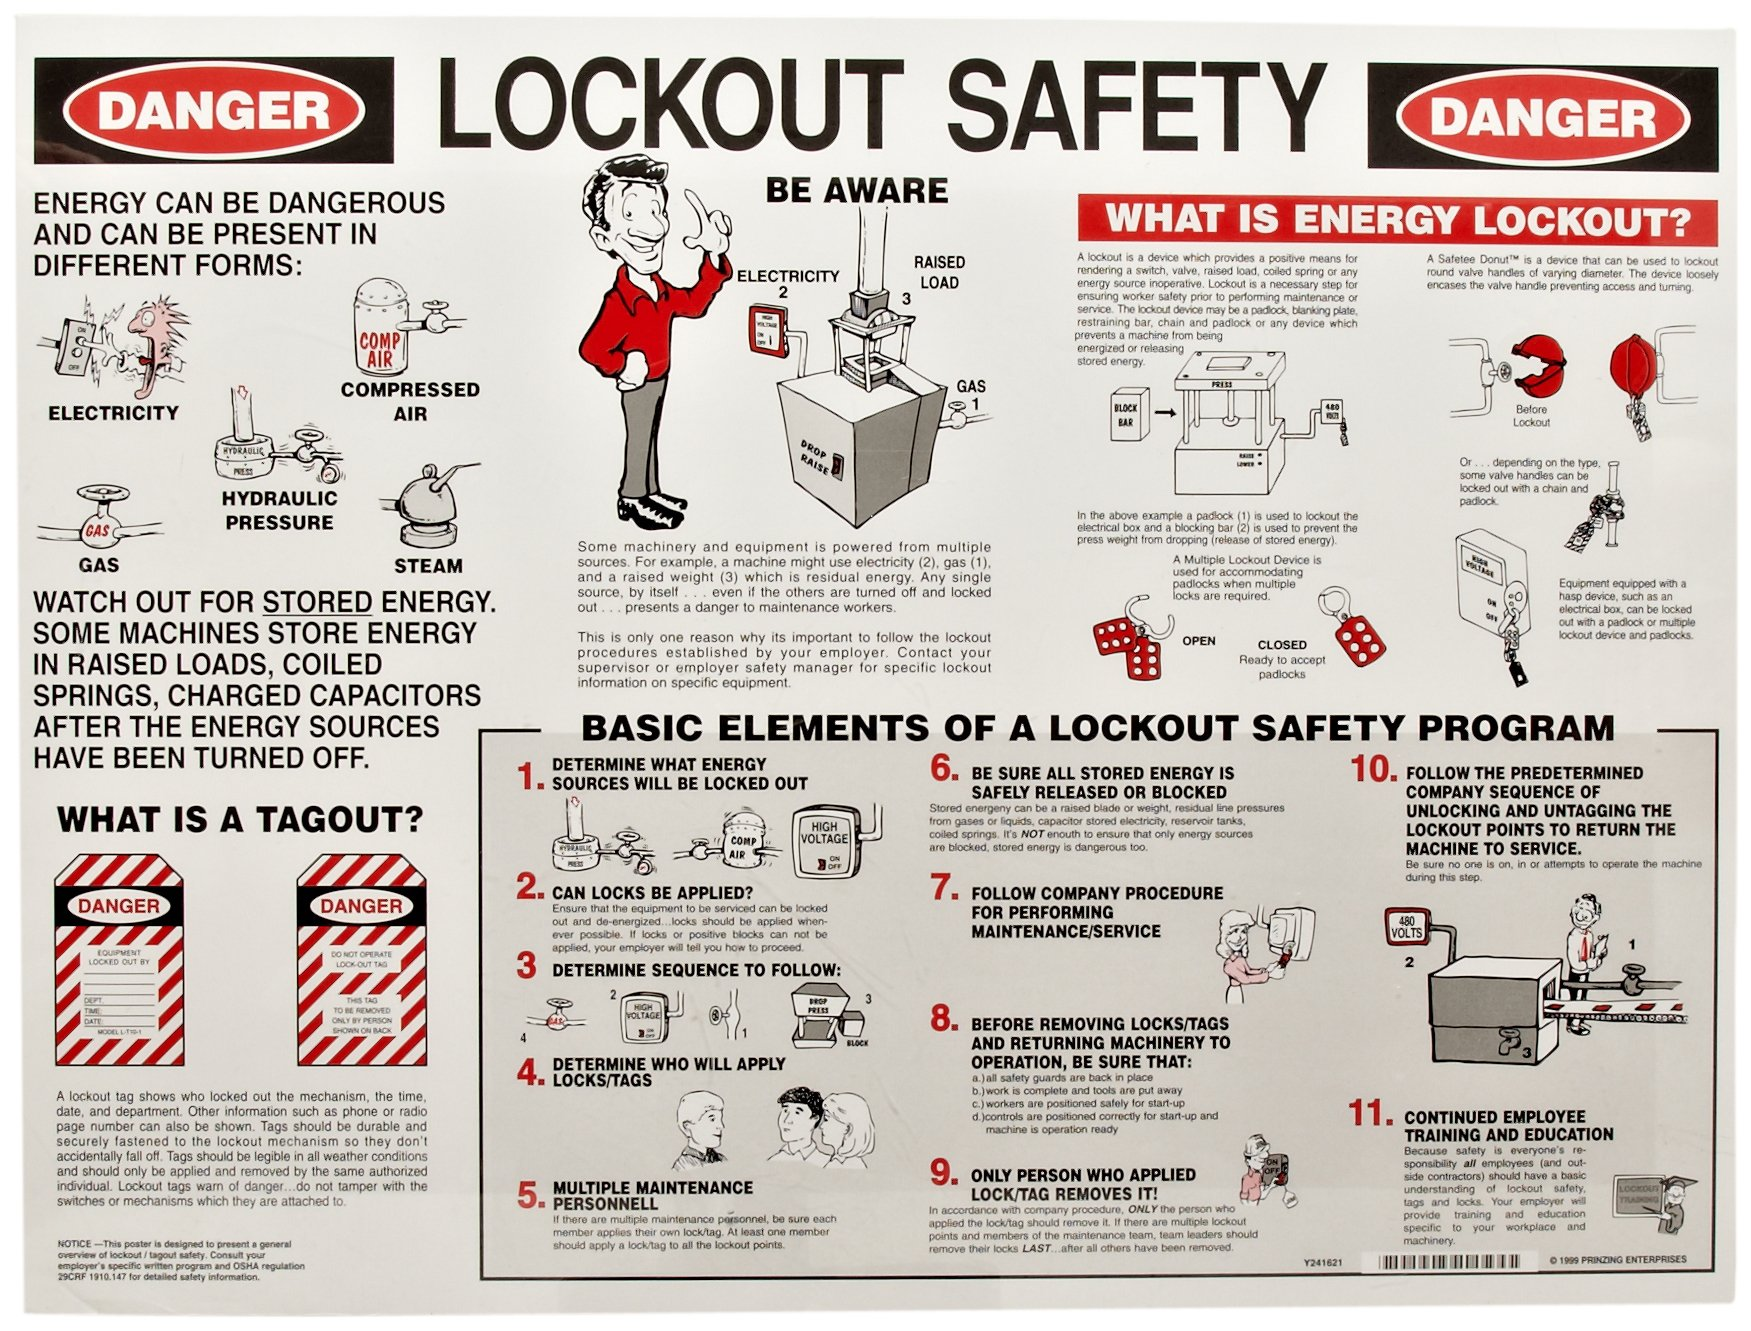 Brady Laminated Lockout Safety Poster, 18'' Height x 24'' Width - 45636